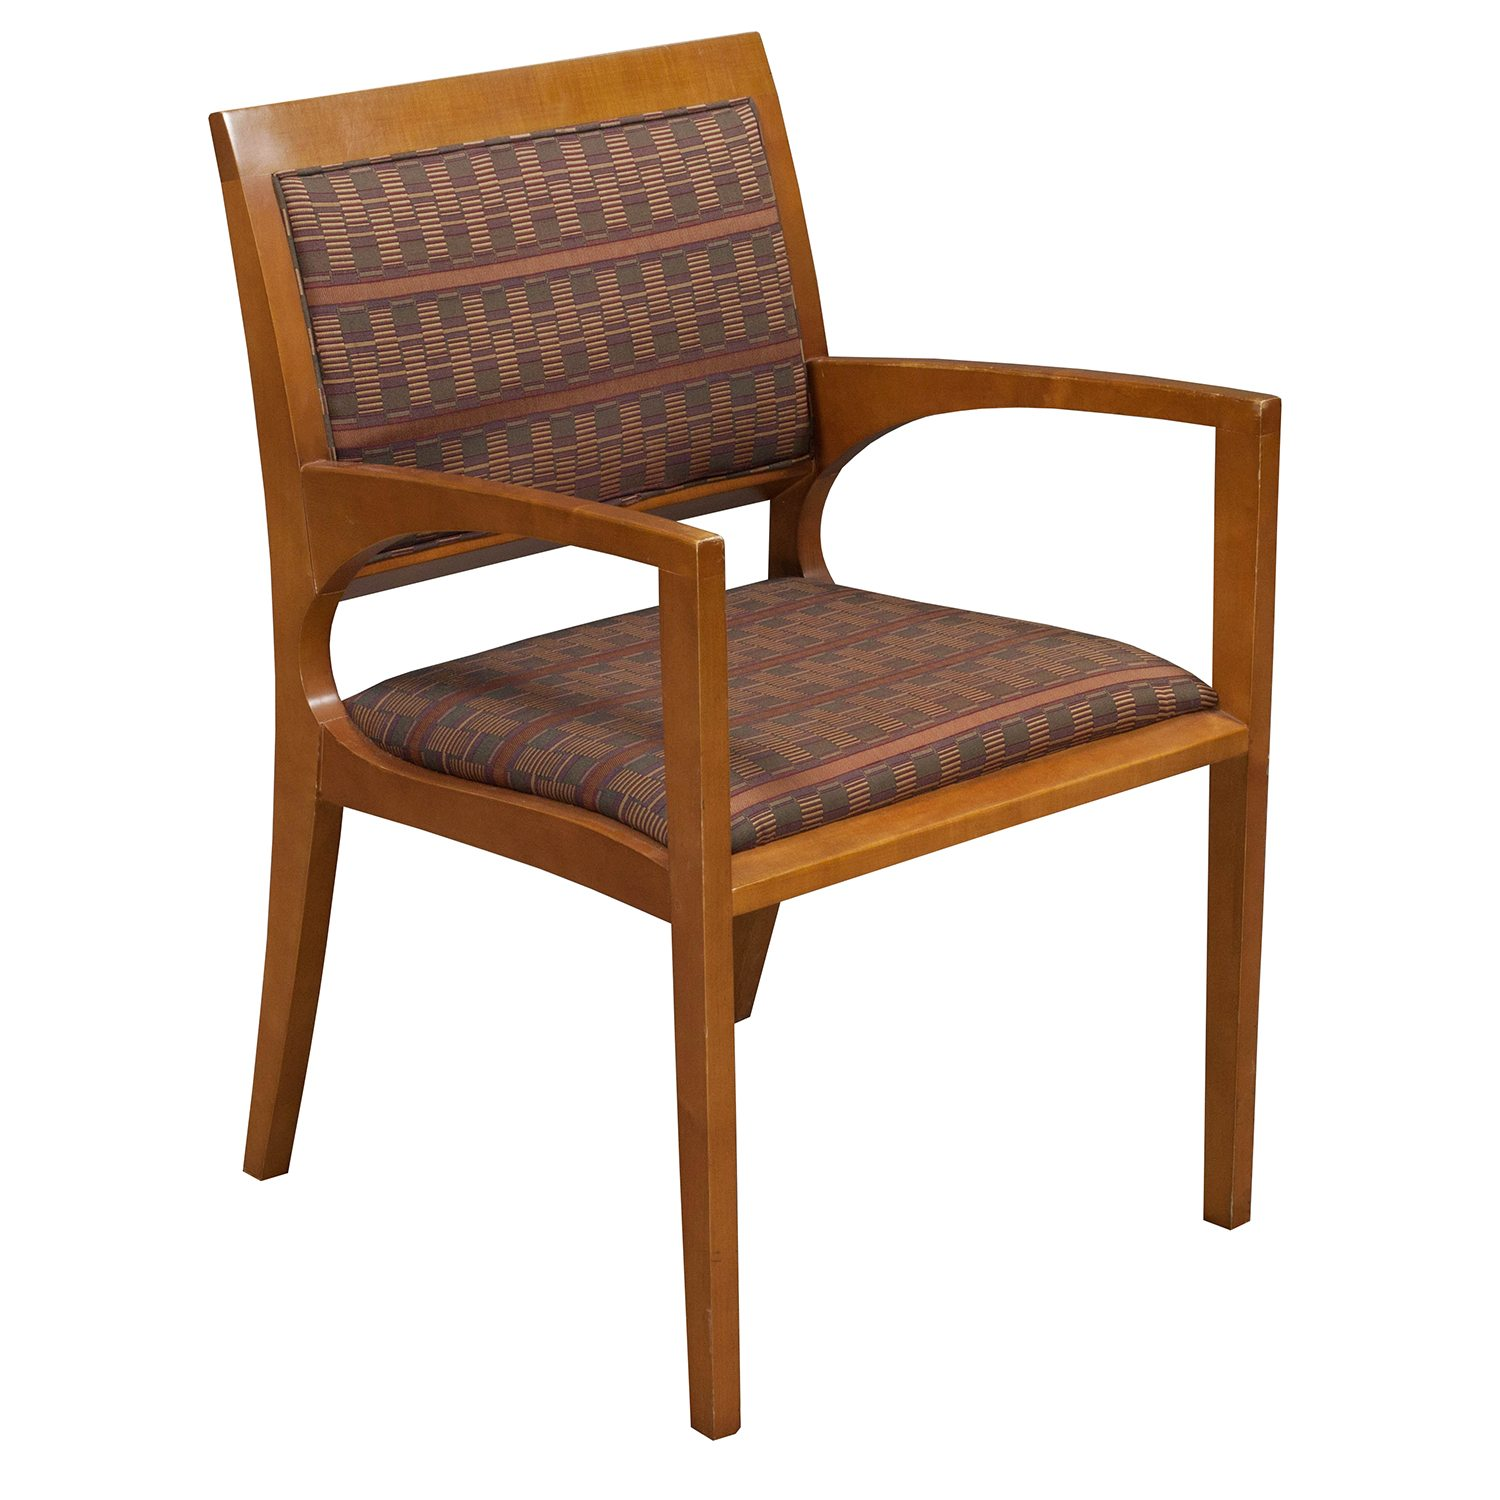 Pattern Chair Bernhardt Used Wood Side Chair Brown Red Geometric